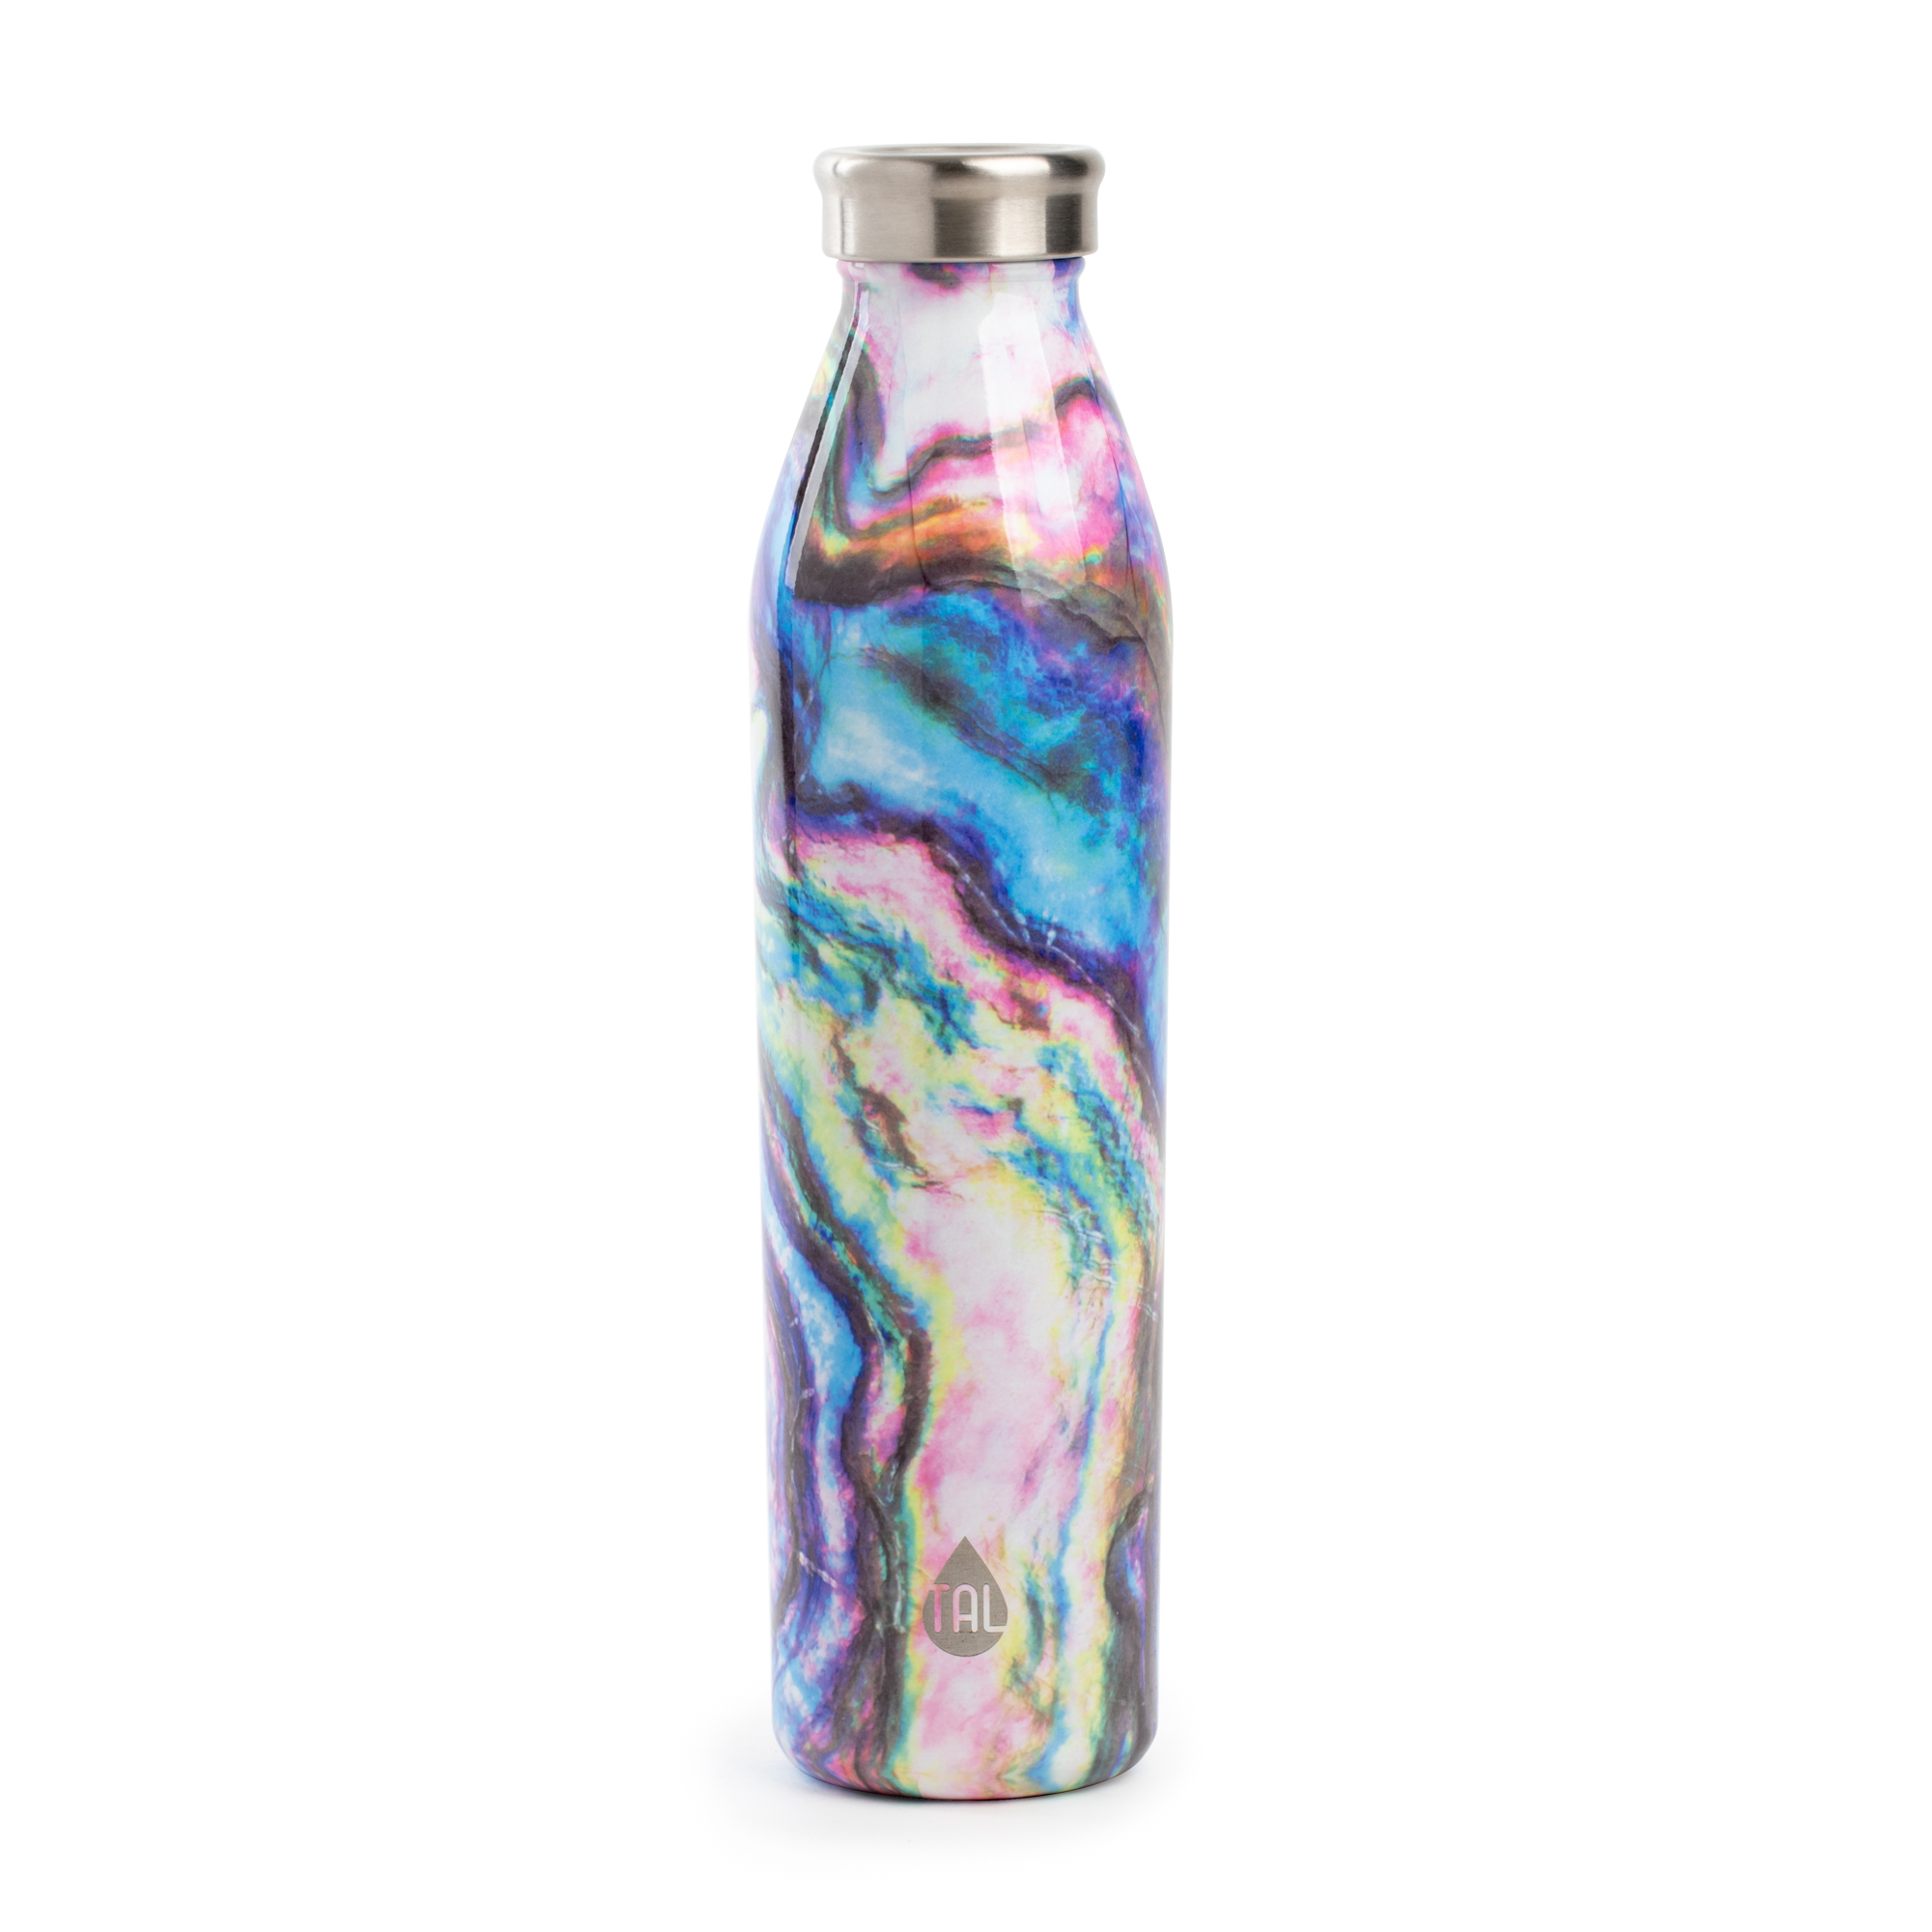 Tal 20 Oz Stainless Vacuum Insulated Modern Water Bottle Pearl From Walmart In San Antonio Tx Burpy Com Tal water bottles hold both hot and cold liquids. tal 20 oz stainless vacuum insulated modern water bottle pearl from walmart in san antonio tx burpy com